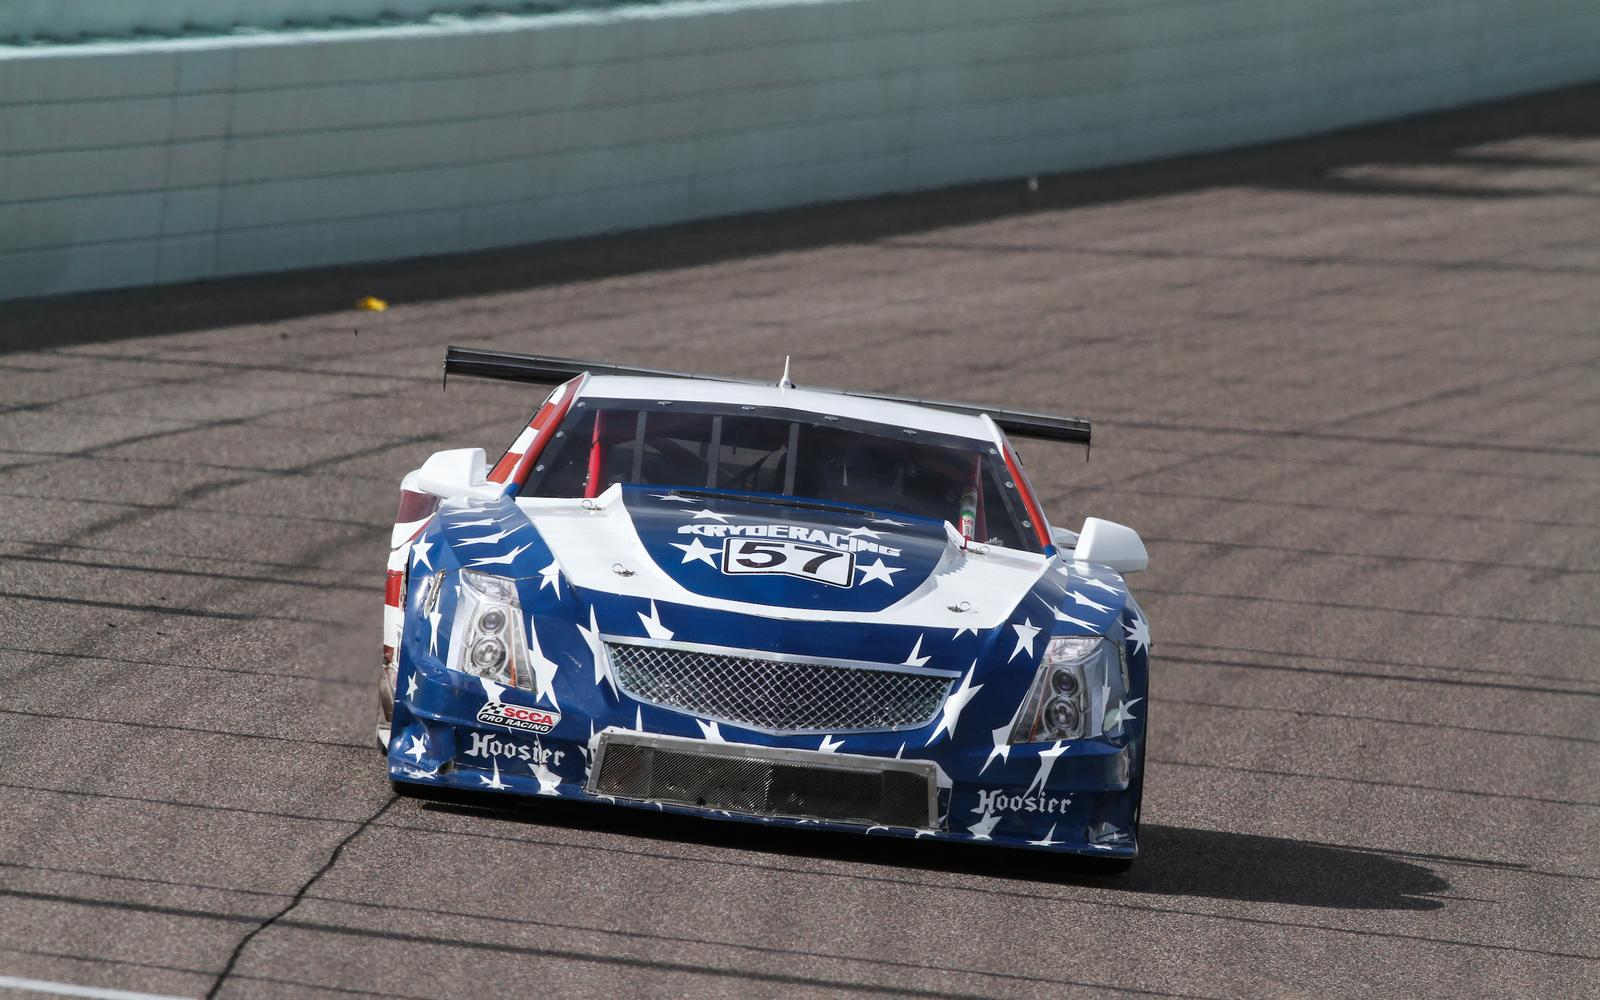 FanRag: Trans Am added to Super 7 Sweep fantasy racing